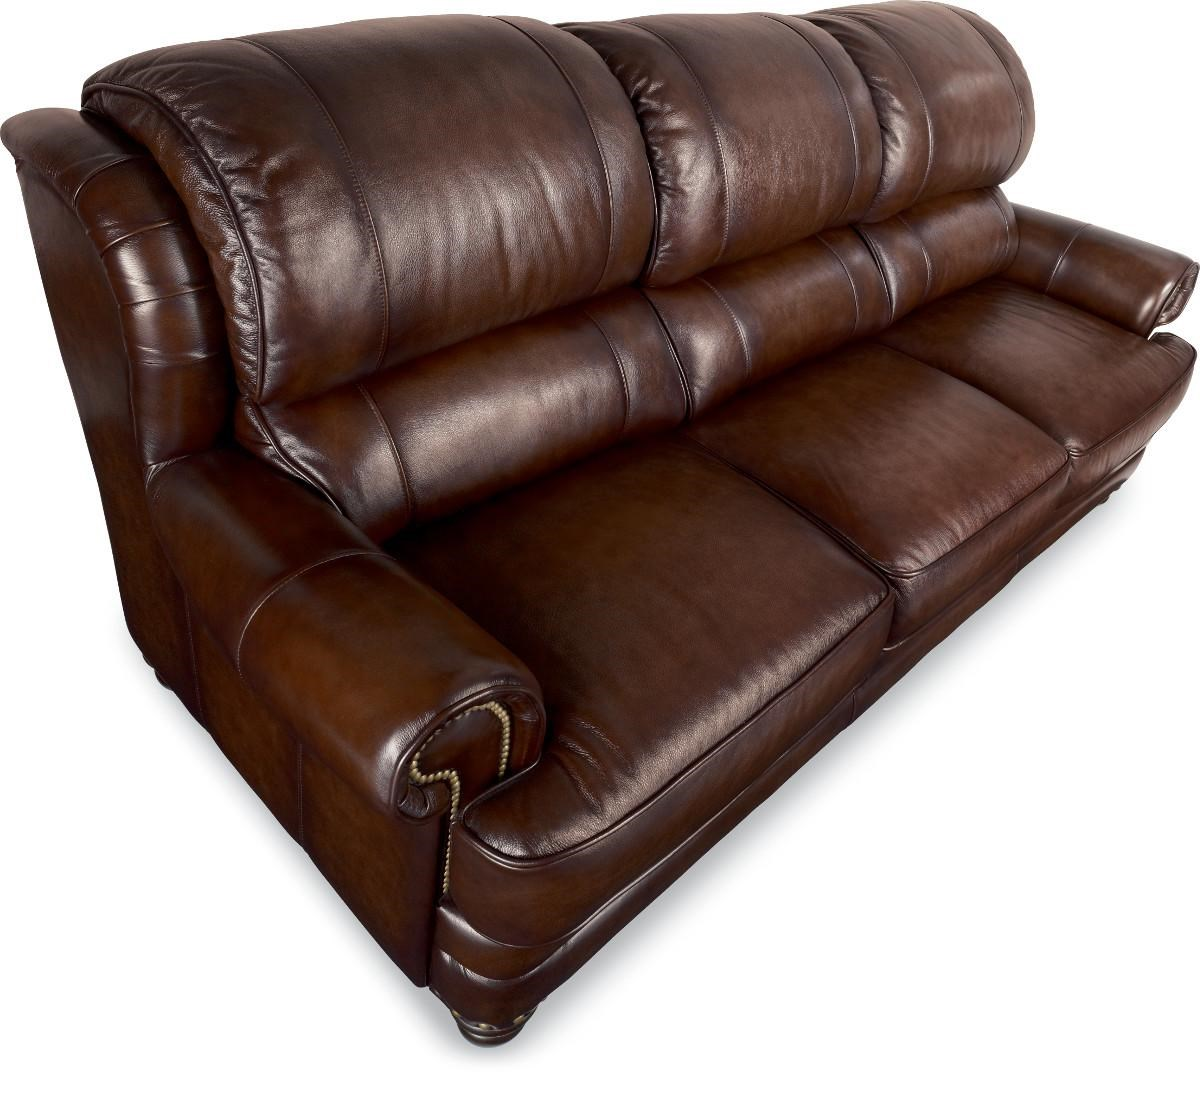 La-Z-Boy JAMISON 710800 Traditional Leather Sofa with Turned Arms and Nail Head Trim  sc 1 st  Great American Home Store & La-Z-Boy JAMISON Traditional Leather Sofa with Turned Arms and ... islam-shia.org